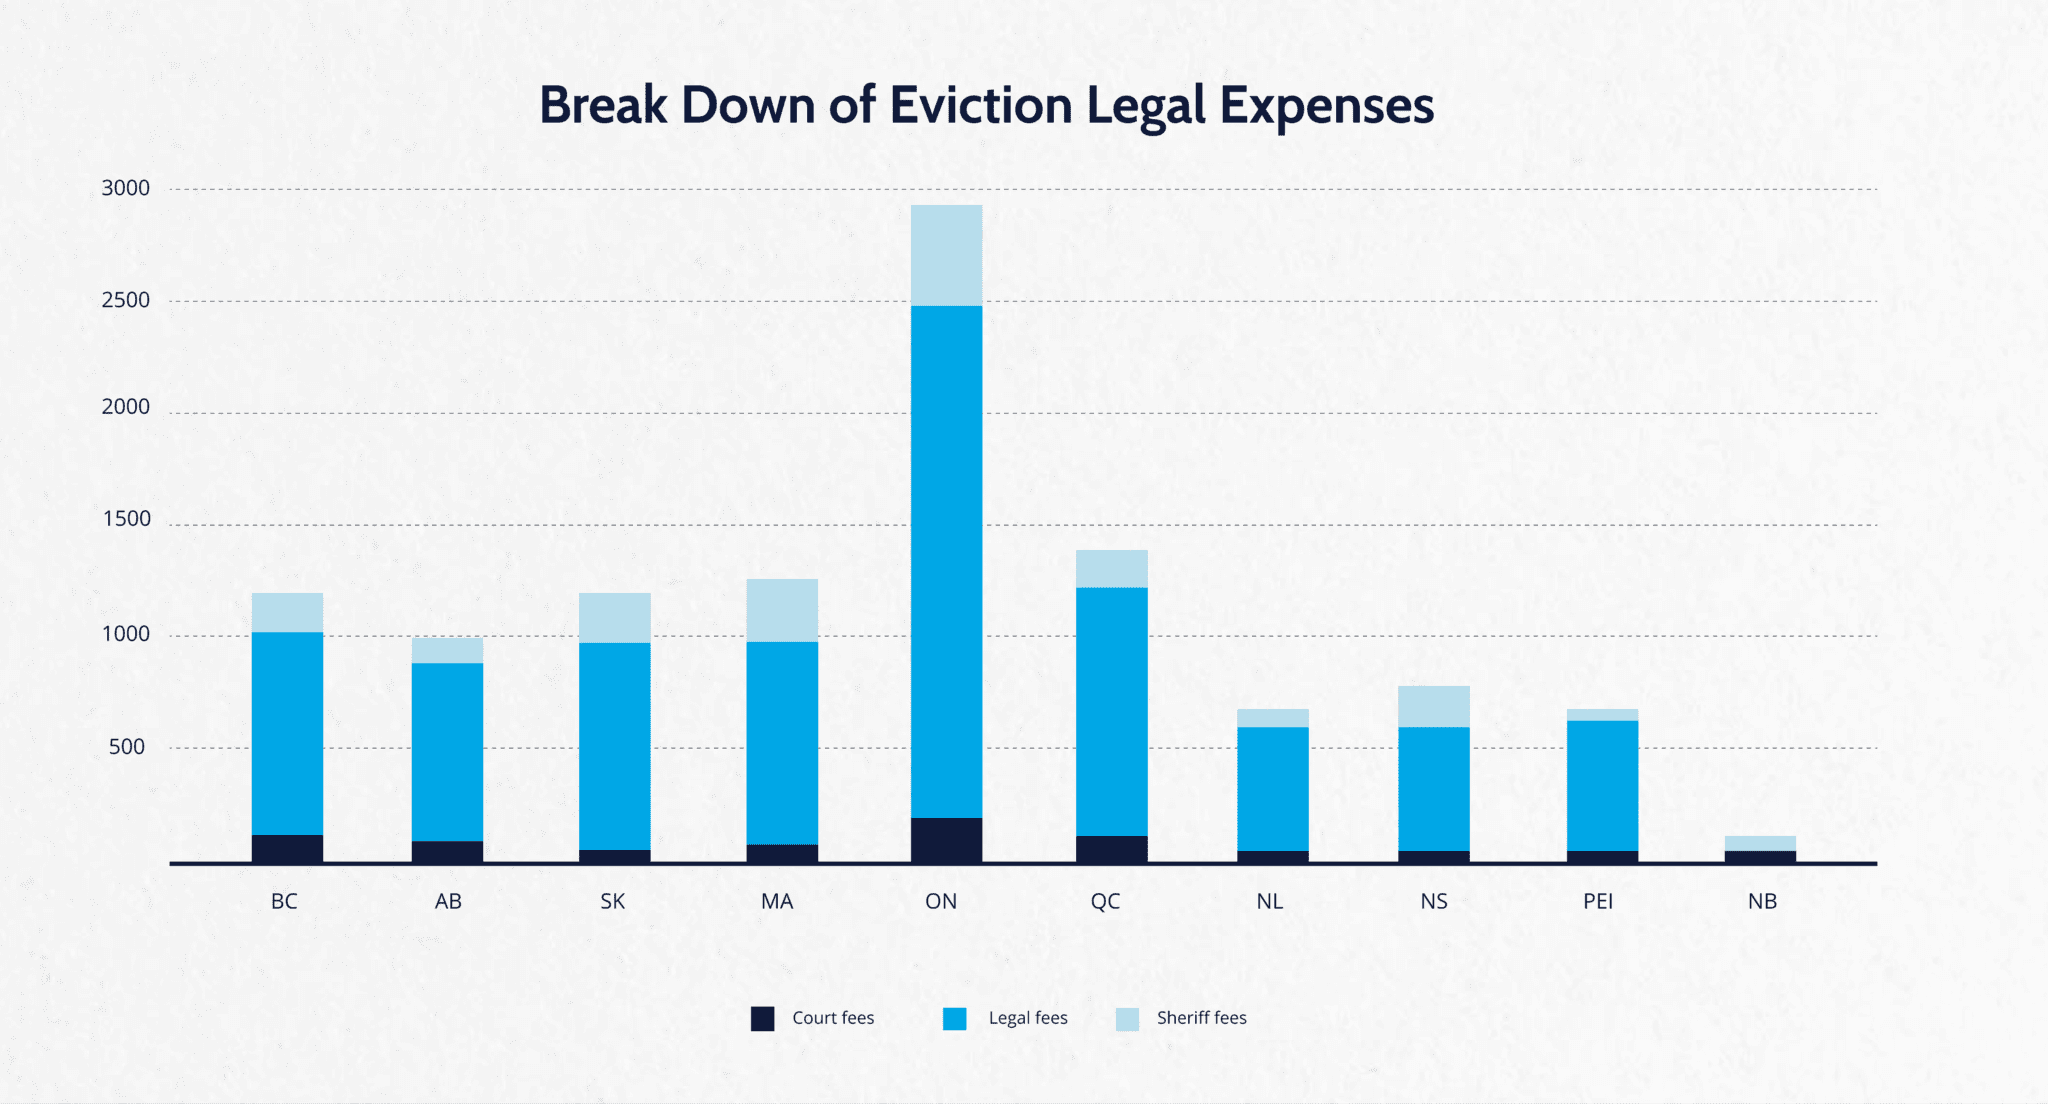 Legal Expenses by Province